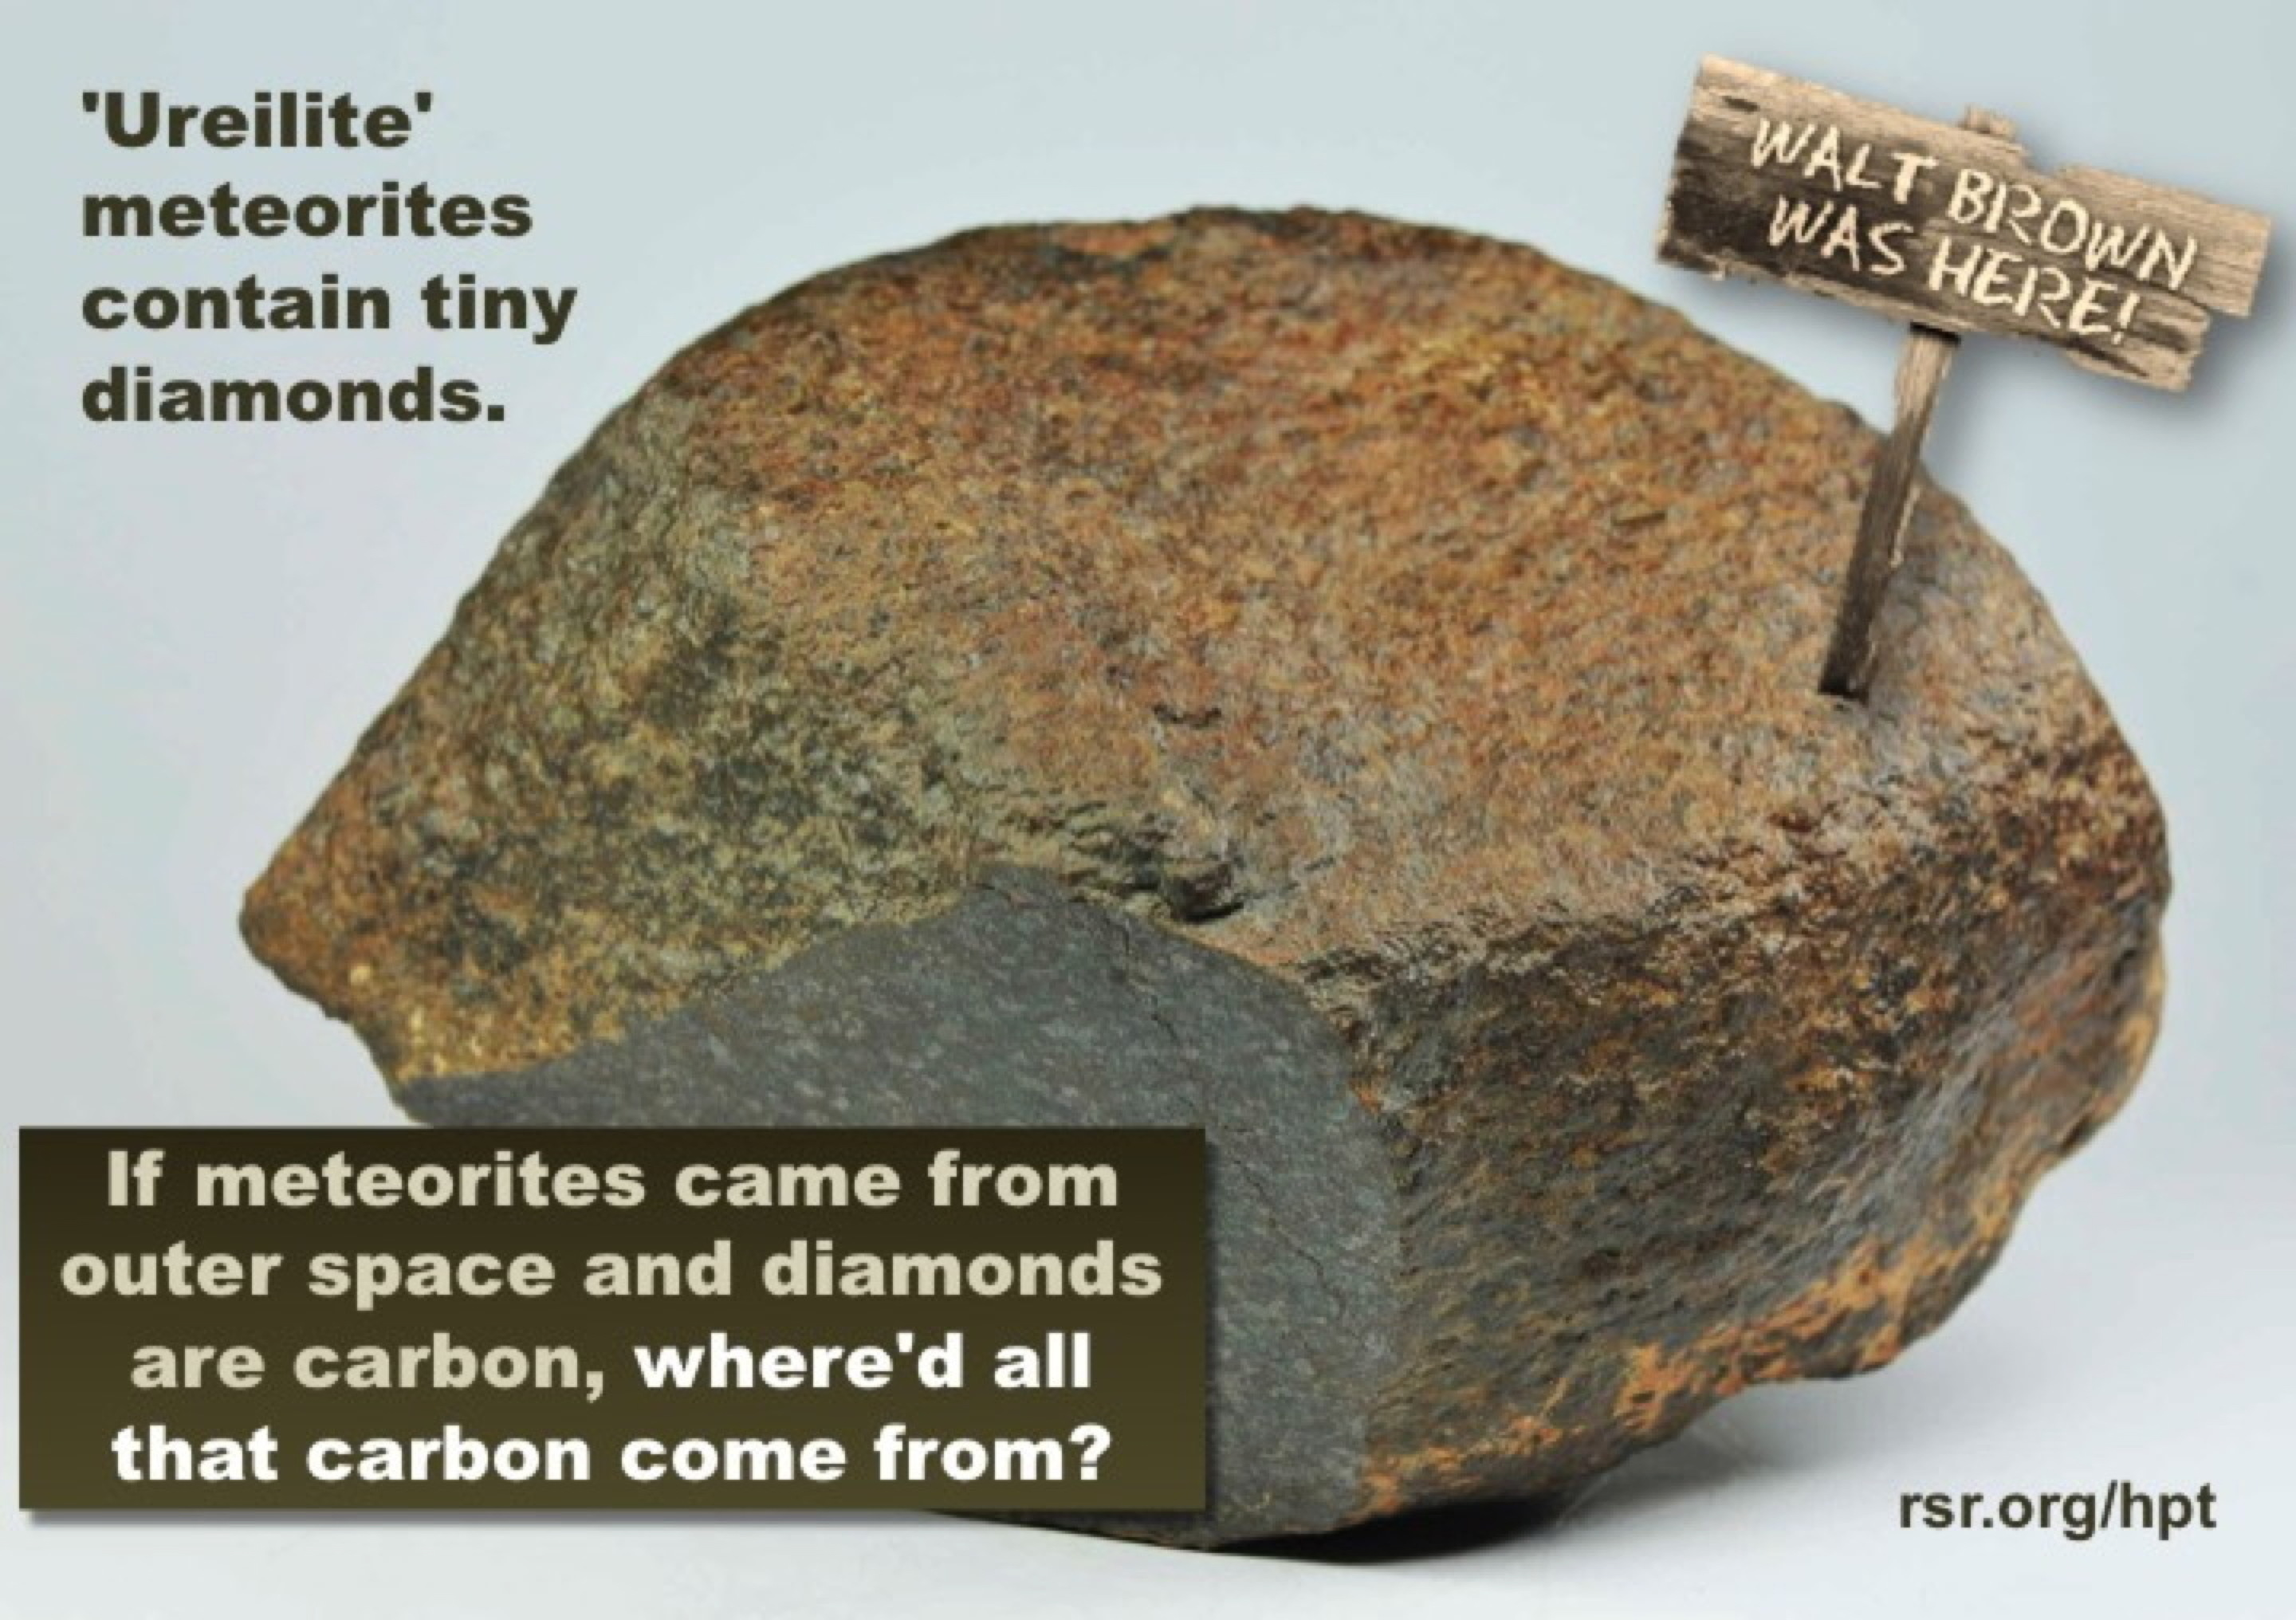 Another WWB Discovery: Diamonds in meteorites? Of course! From Earth and launched by the fountains of the great deep